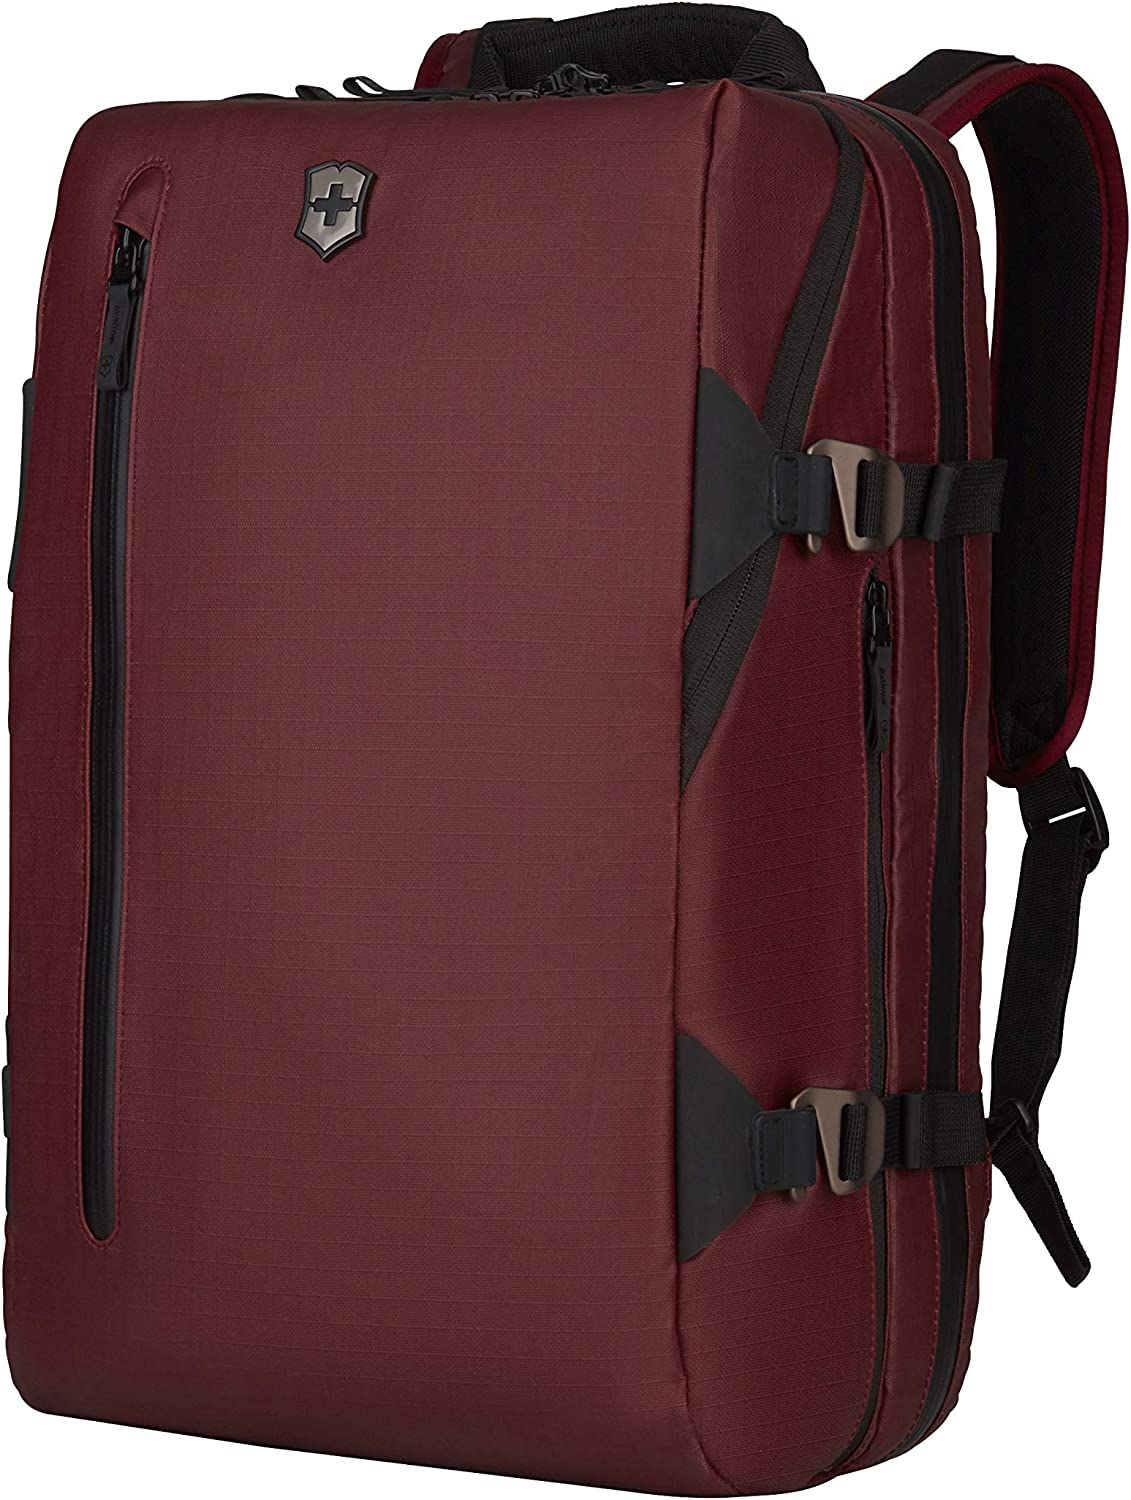 "Victorinox VX Touring 17"" Laptop Backpack with Tablet Pocket, Beetroot, 19.2-Inch"